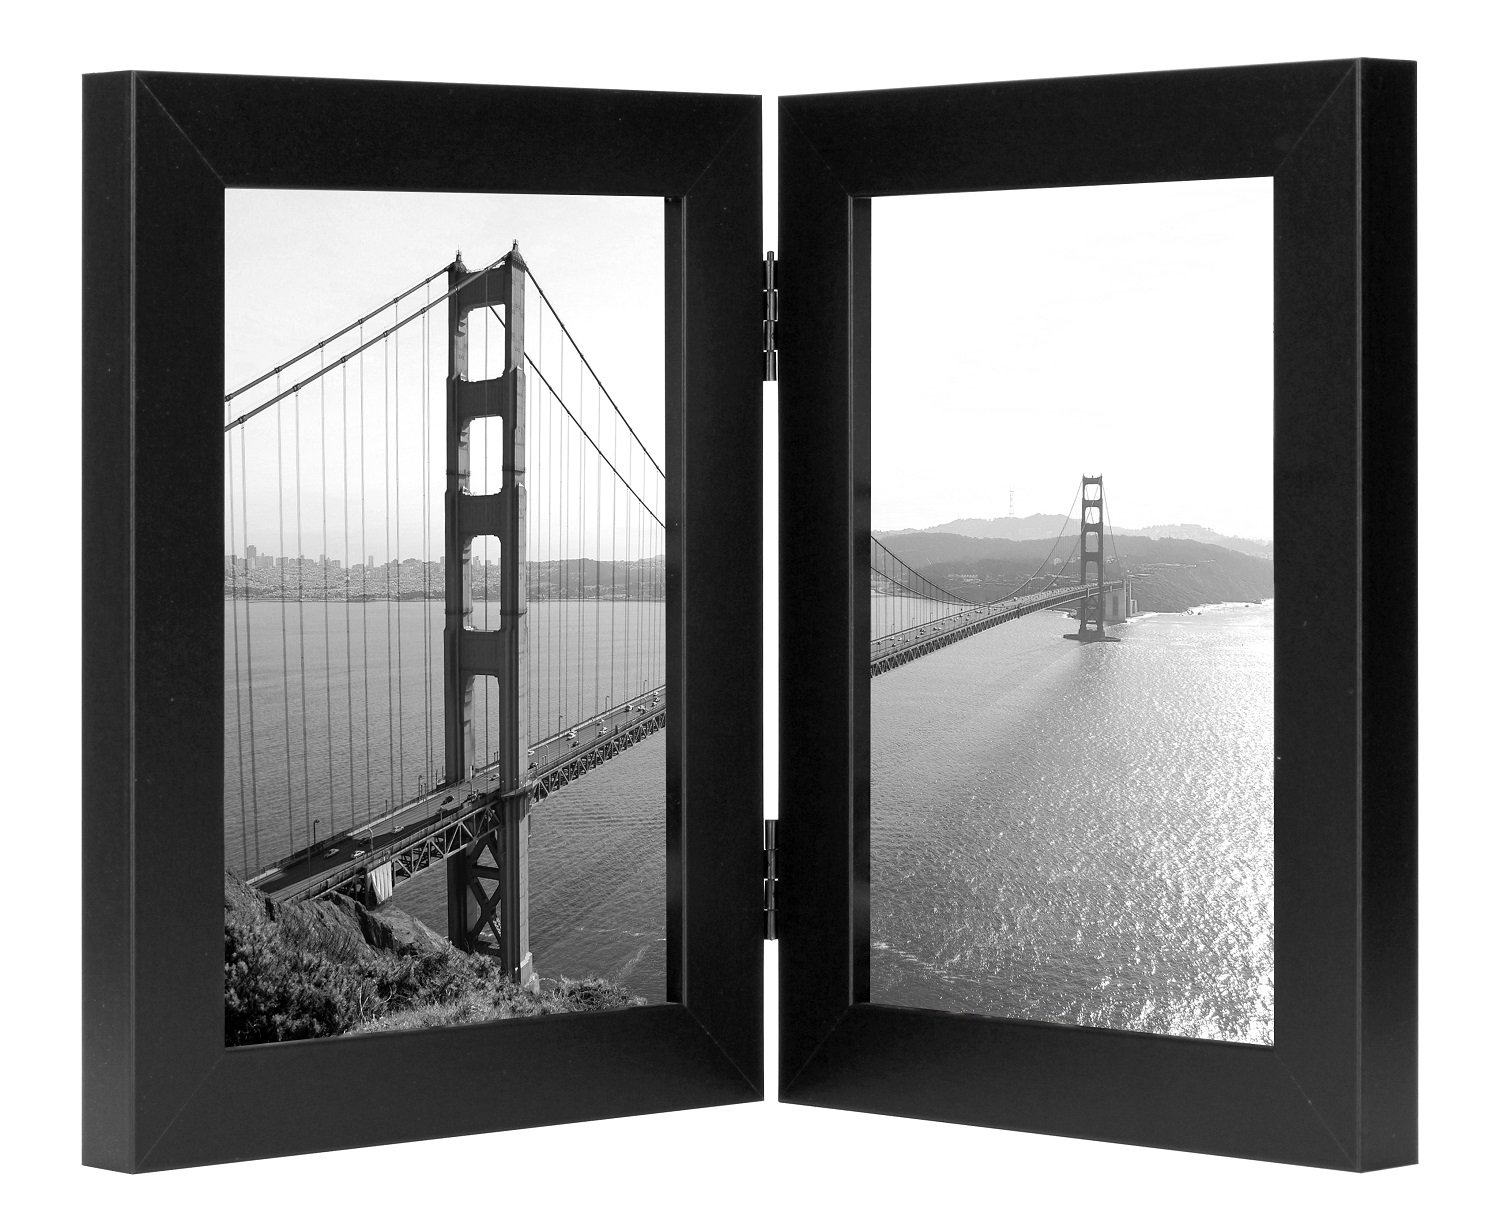 Frametory, Hinged Picture Frame with Glass Front Made to Display Two Pictures, Stands Vertically on Desktop or Table Top… - DESIGN: Black hinged frame with sturdy hinges to provide support. Elegantly displays two 5x7 inch pictures side-by-side. The frame is made with a thick 2mm glass front that can be removed and polished. USE AND DISPLAY: Frame set holds two photos side by side. Stands on a desk or tabletop, perfect for a home or office. Excellent way to display memories, important reminders or collage photos. QUALITY: Sturdy frame made to last. Clear glass front preserves and protects your photos. The frame is made from high quality MDF and polished so the corners are not visible. - picture-frames, bedroom-decor, bedroom - 71X0T7vyhwL -